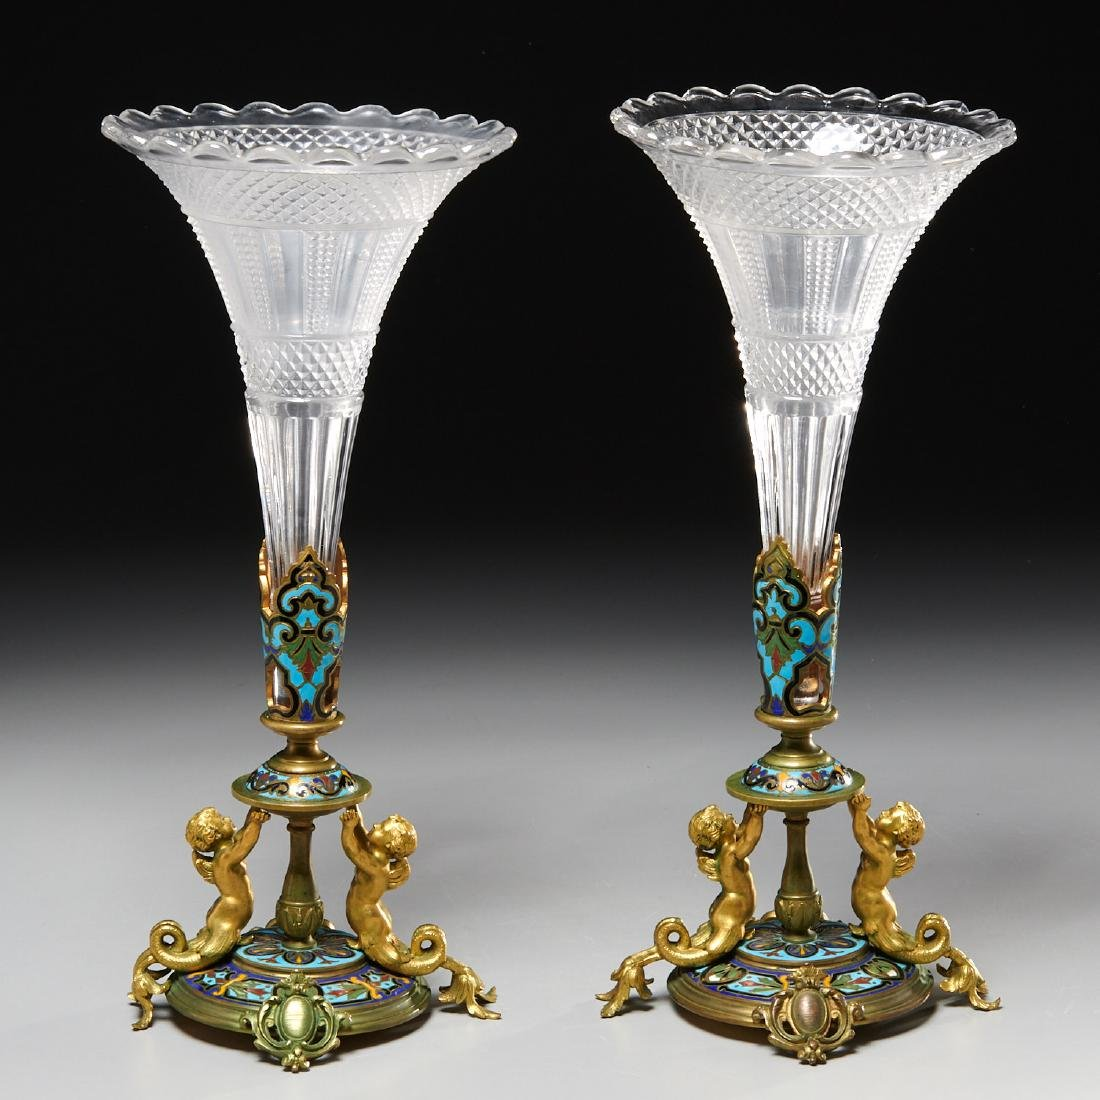 Pair Napoleon III champleve enamel and glass vases